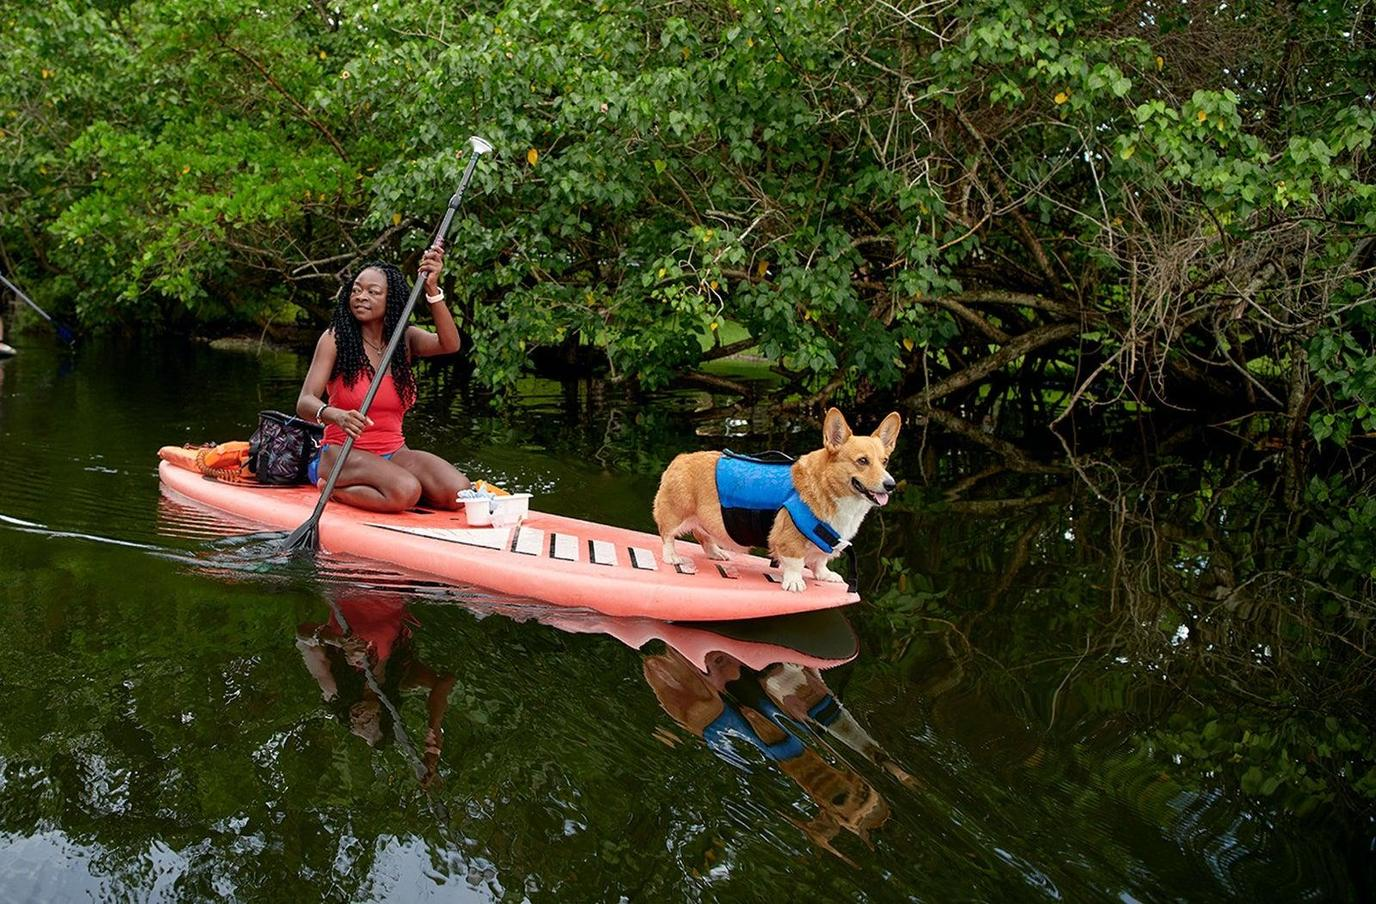 A Woman Stand Up Paddleboards With A Corgi.